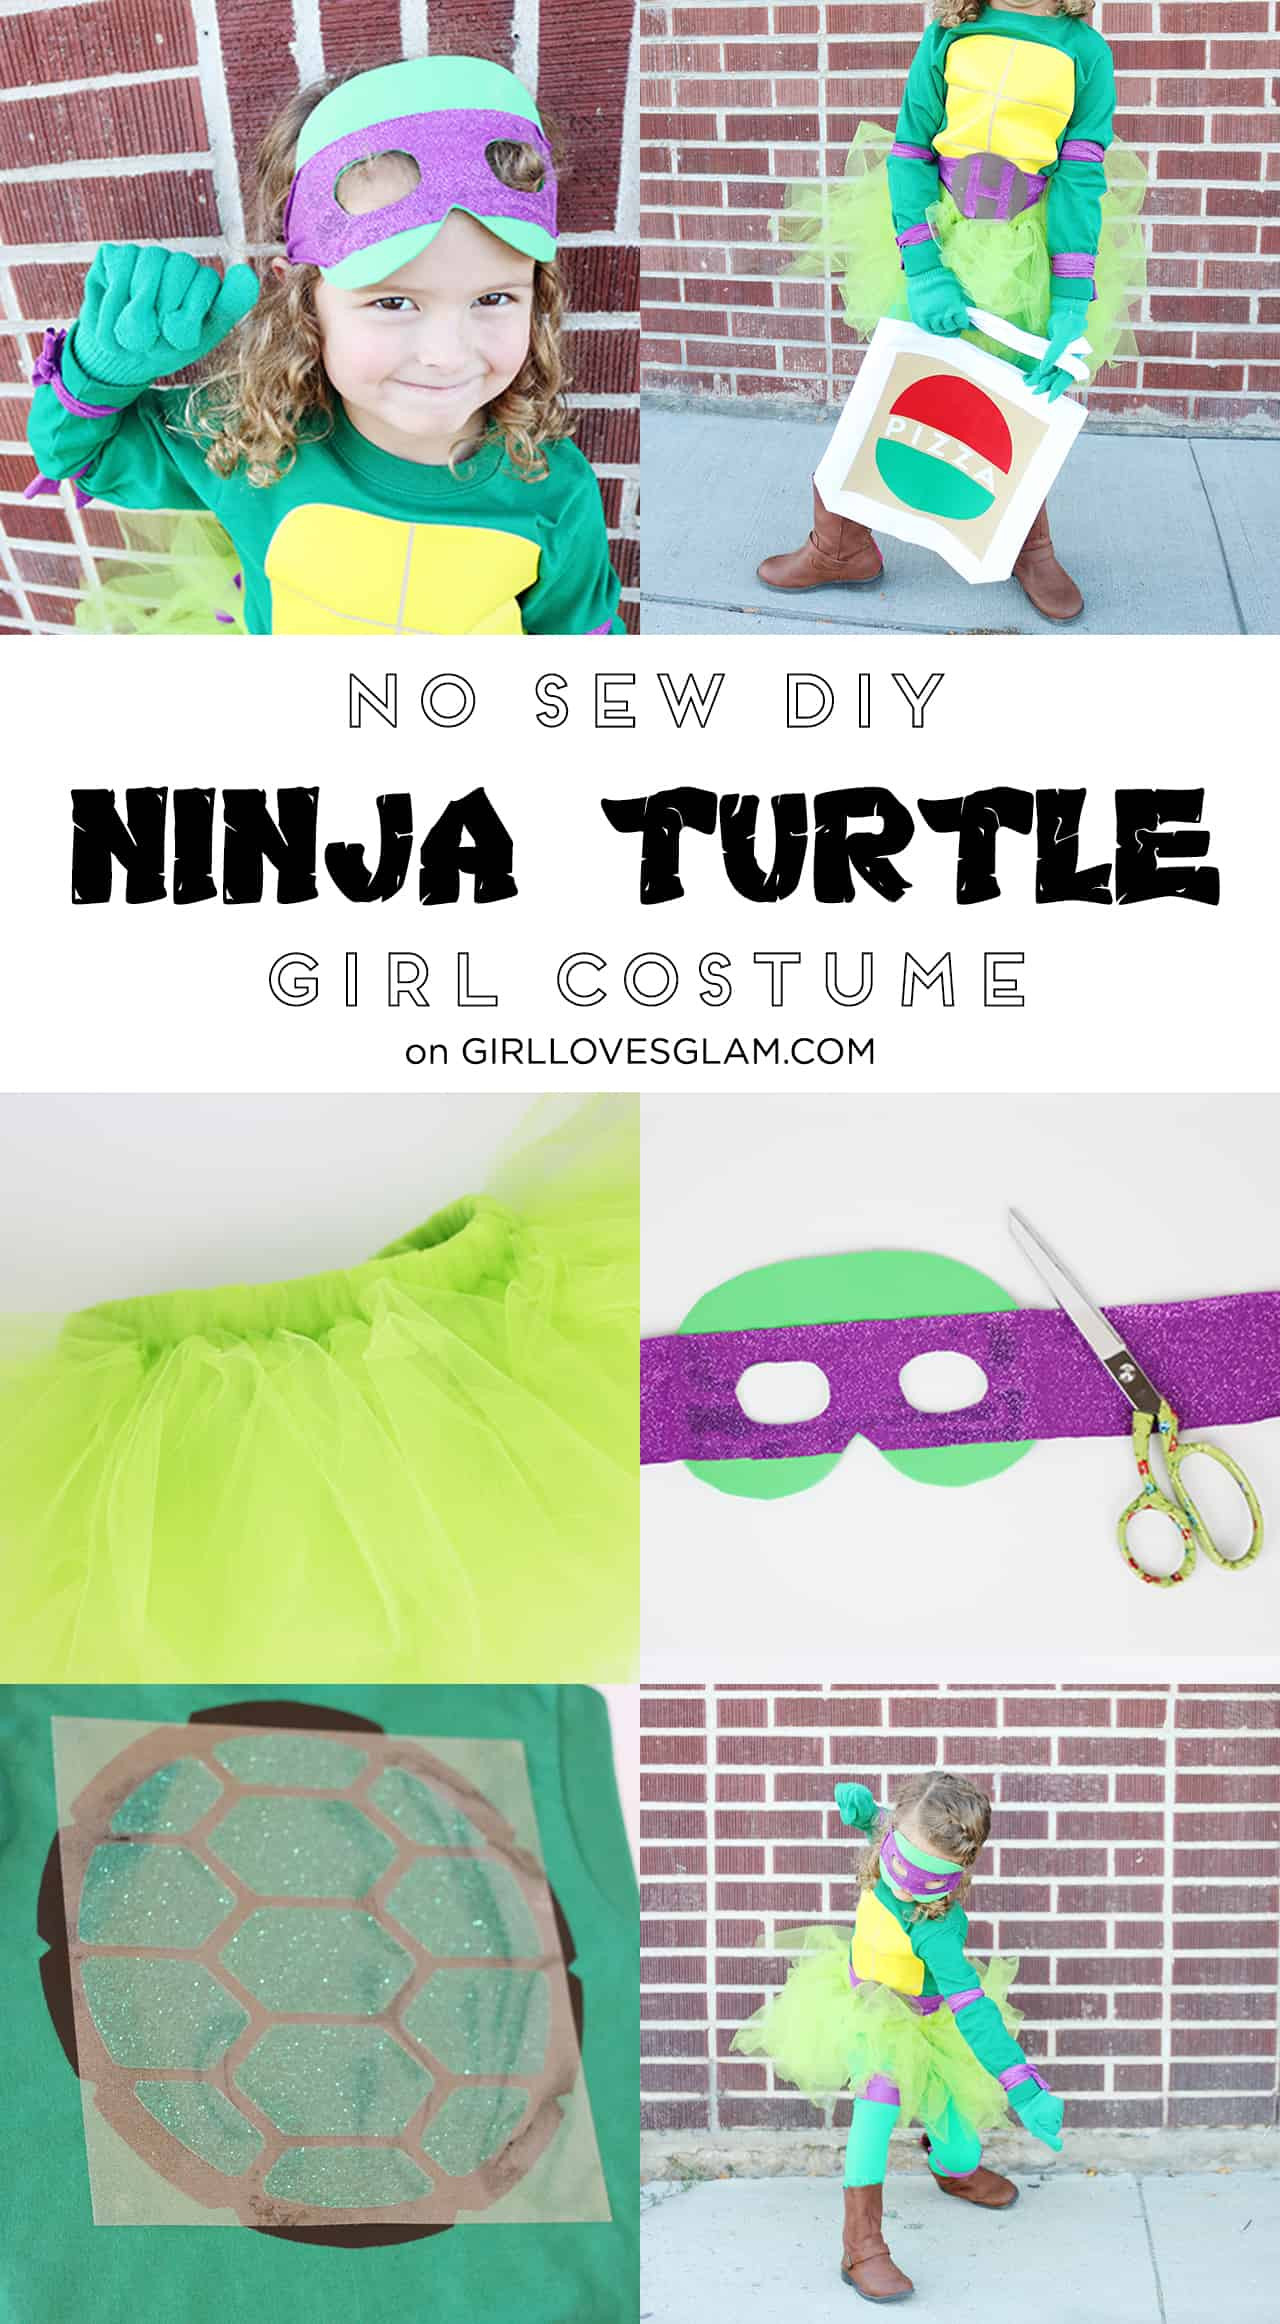 Best ideas about DIY Ninja Turtle Mask . Save or Pin DIY No Sew Ninja Turtle Costume for Girls Girl Loves Glam Now.